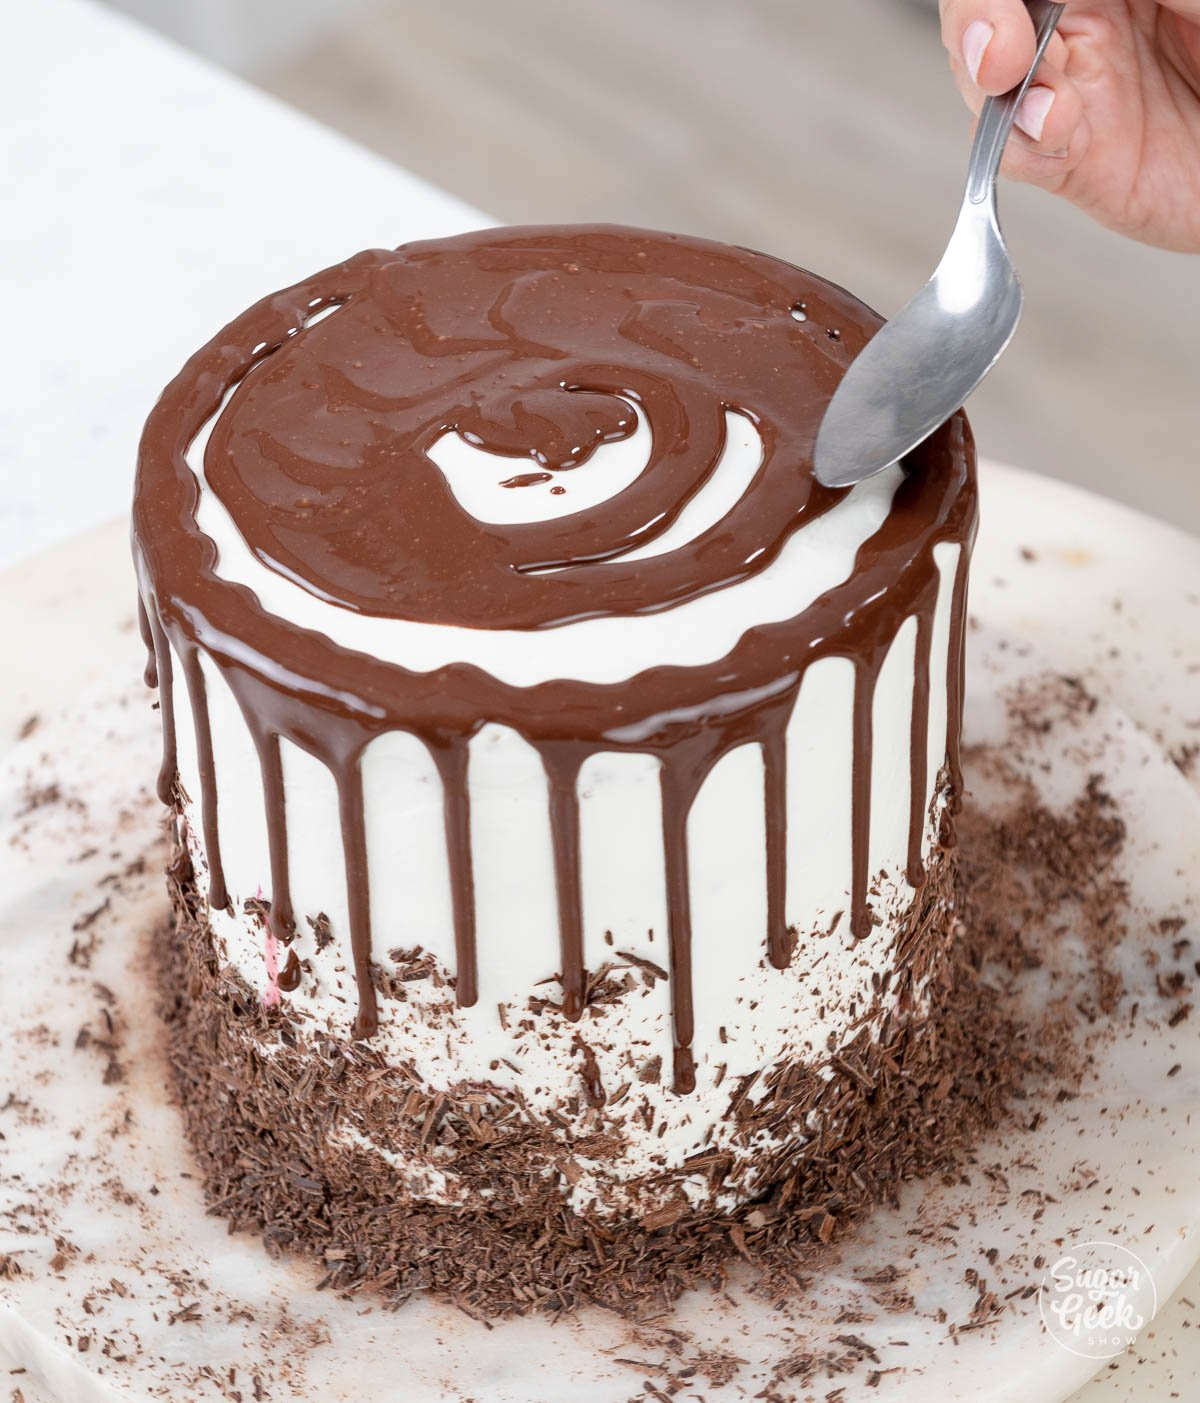 covering the cake with ganache